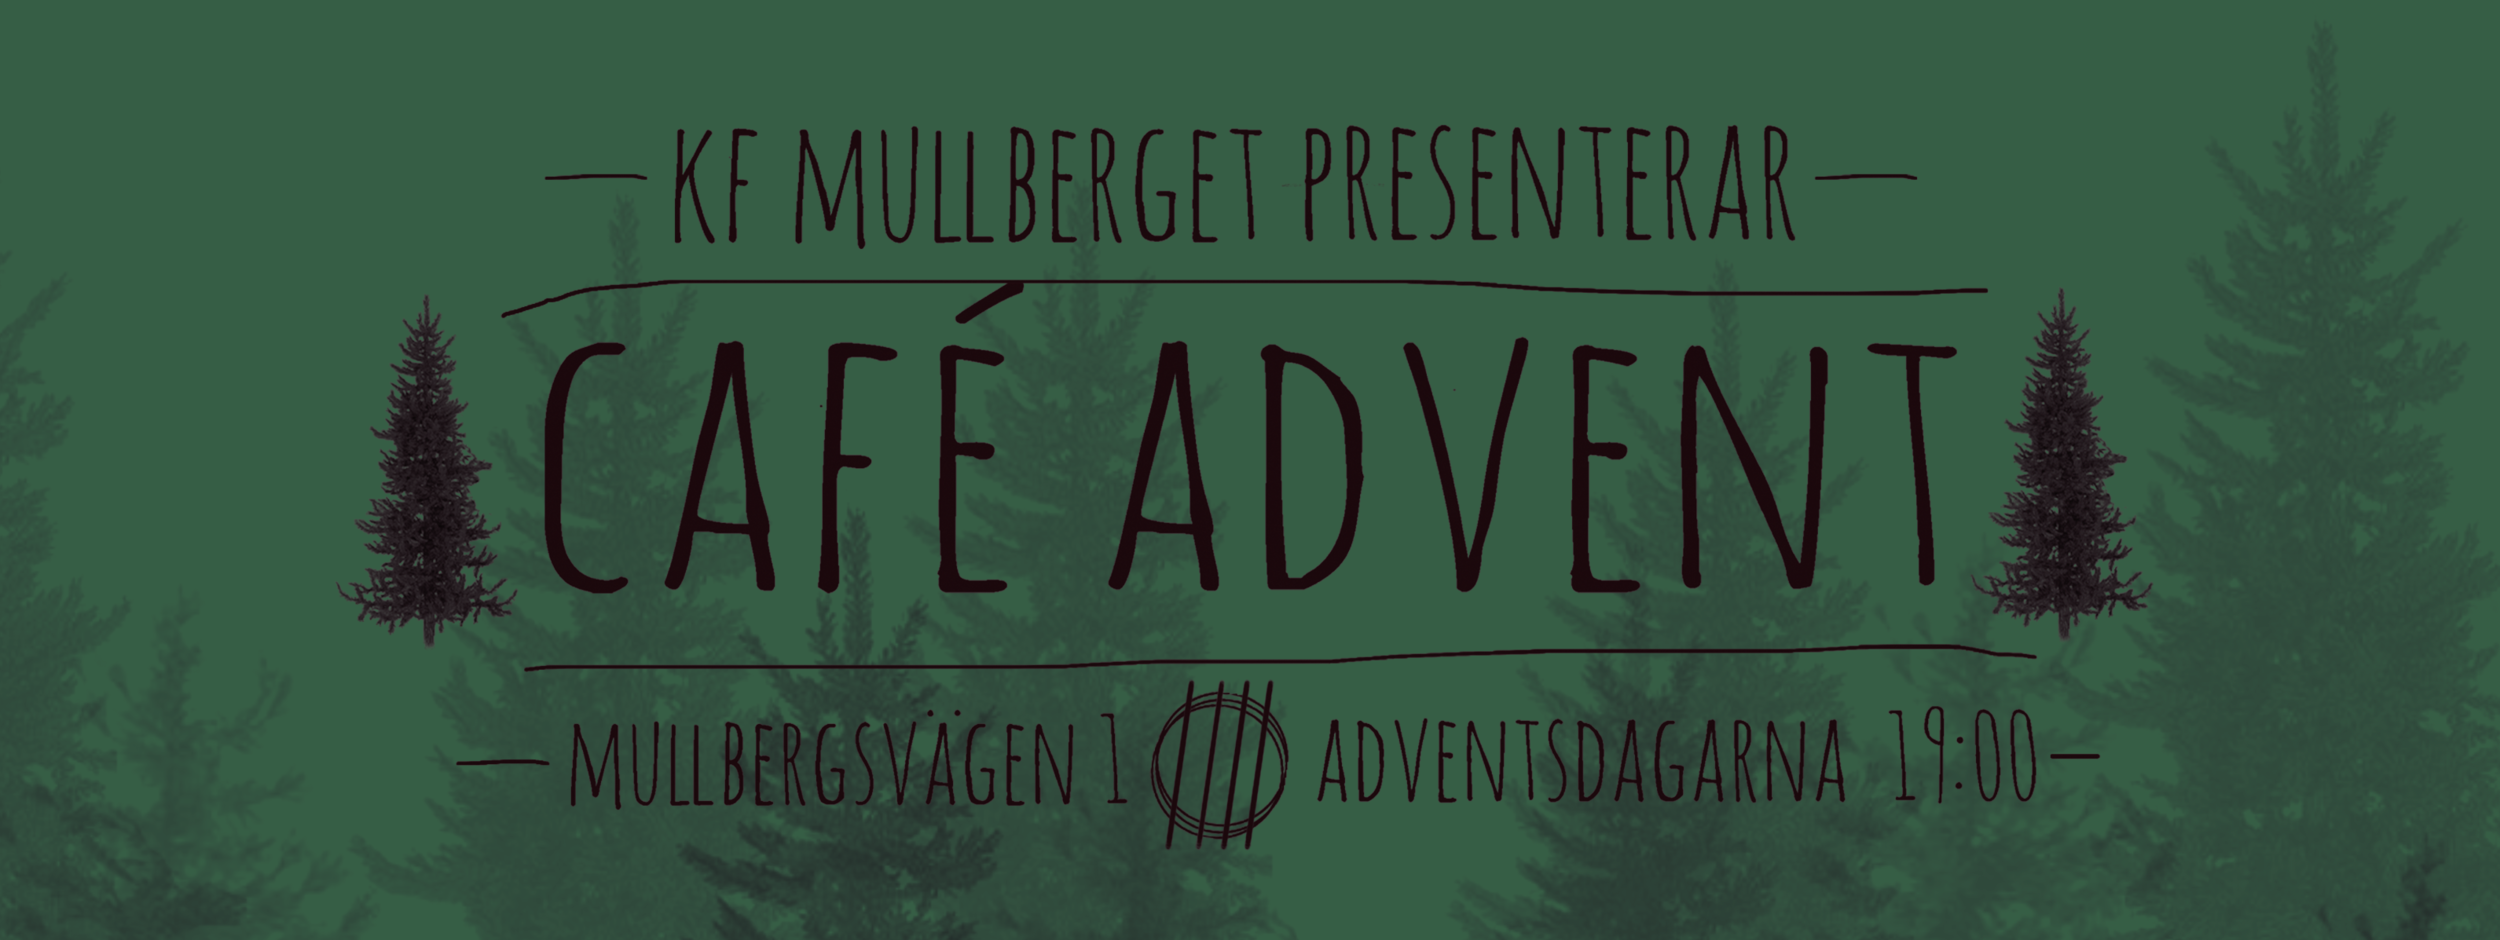 Cafe advent omslag 2019 .png